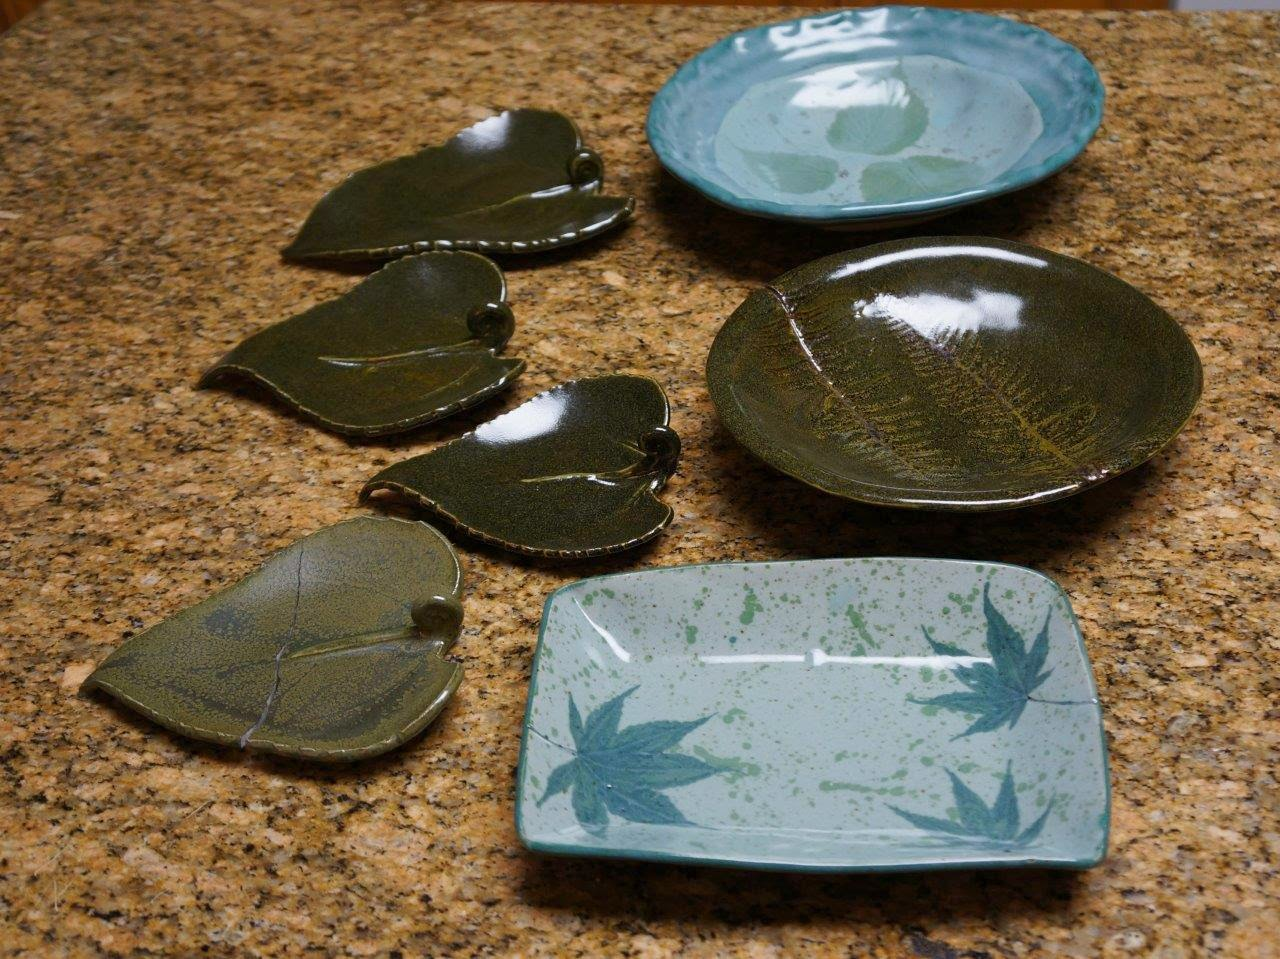 Handmade ceramic stoneware pottery dishes and bowls.